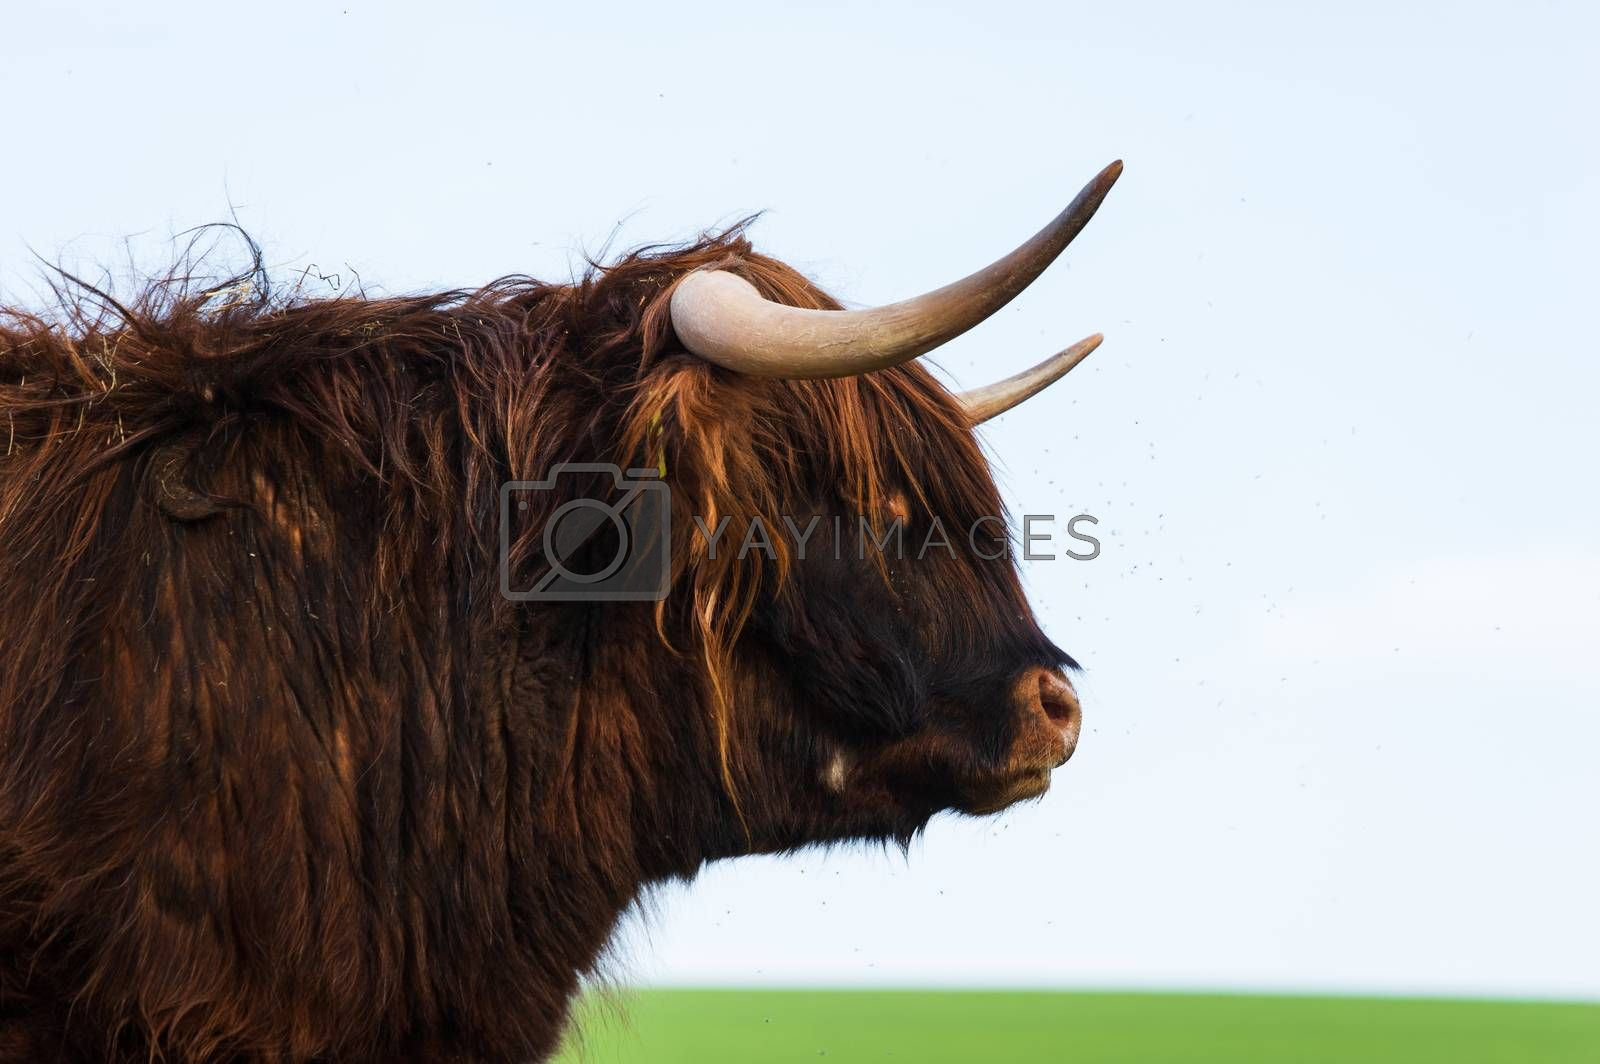 Scottish highland cattle standing on a meadow in spring